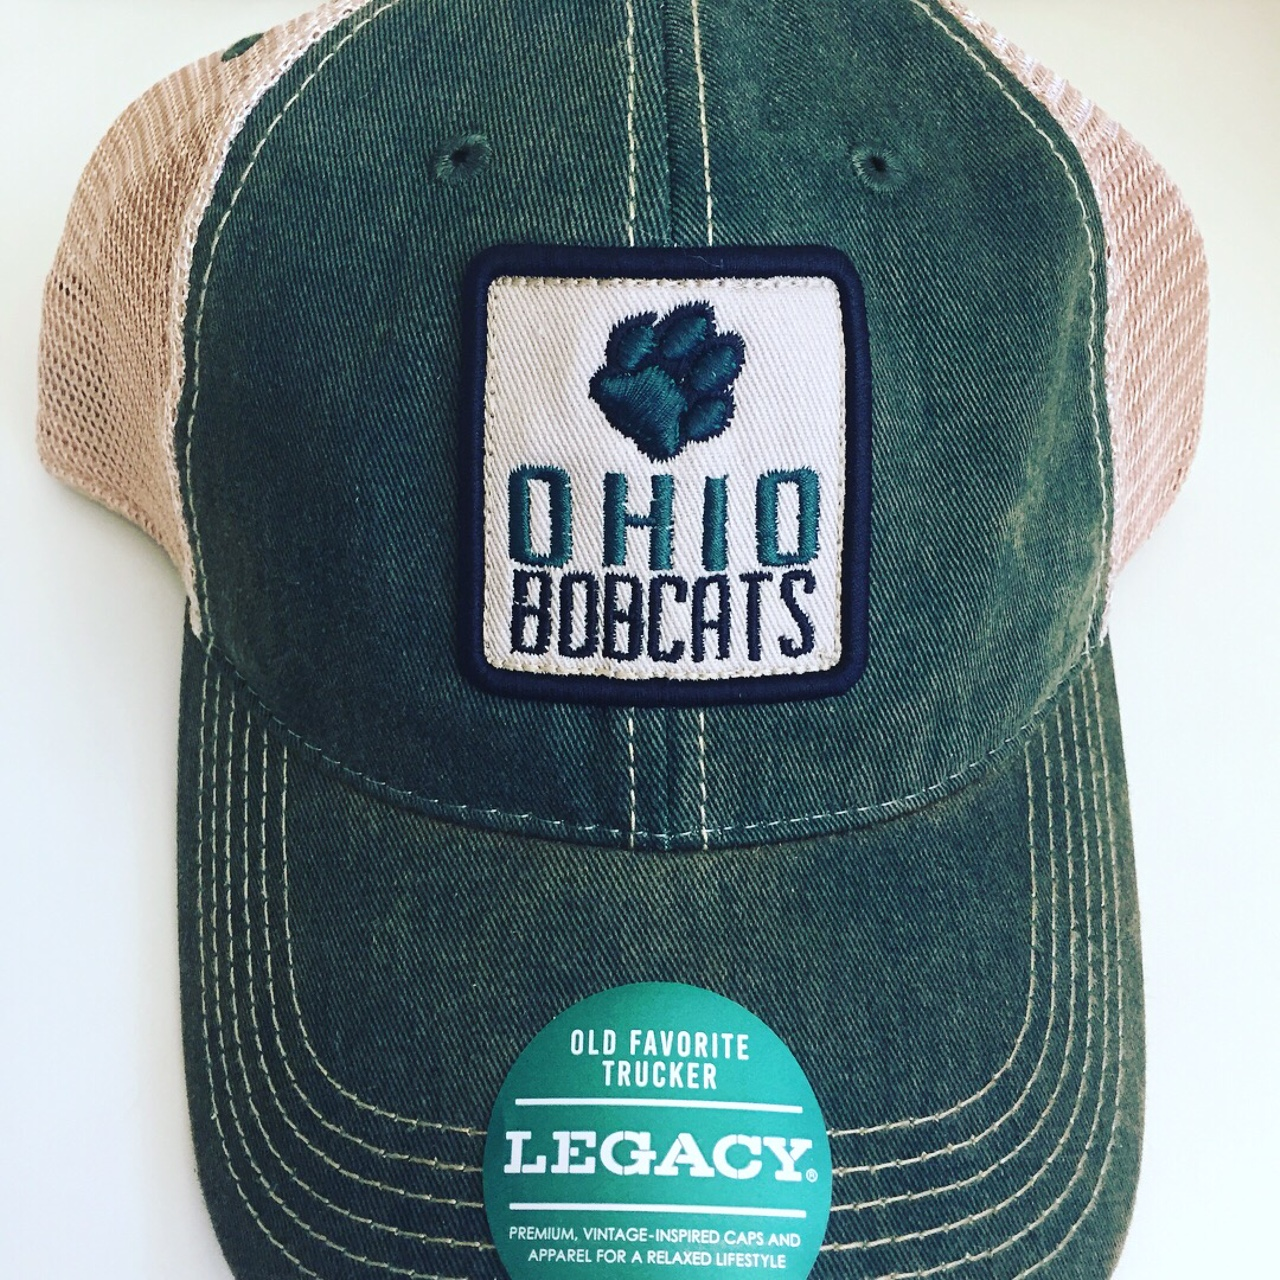 Paw patch legacy old favorite trucker green hats JPG 1280x1280 Legacy old  favorite trucker cap 67877b1fc0b8